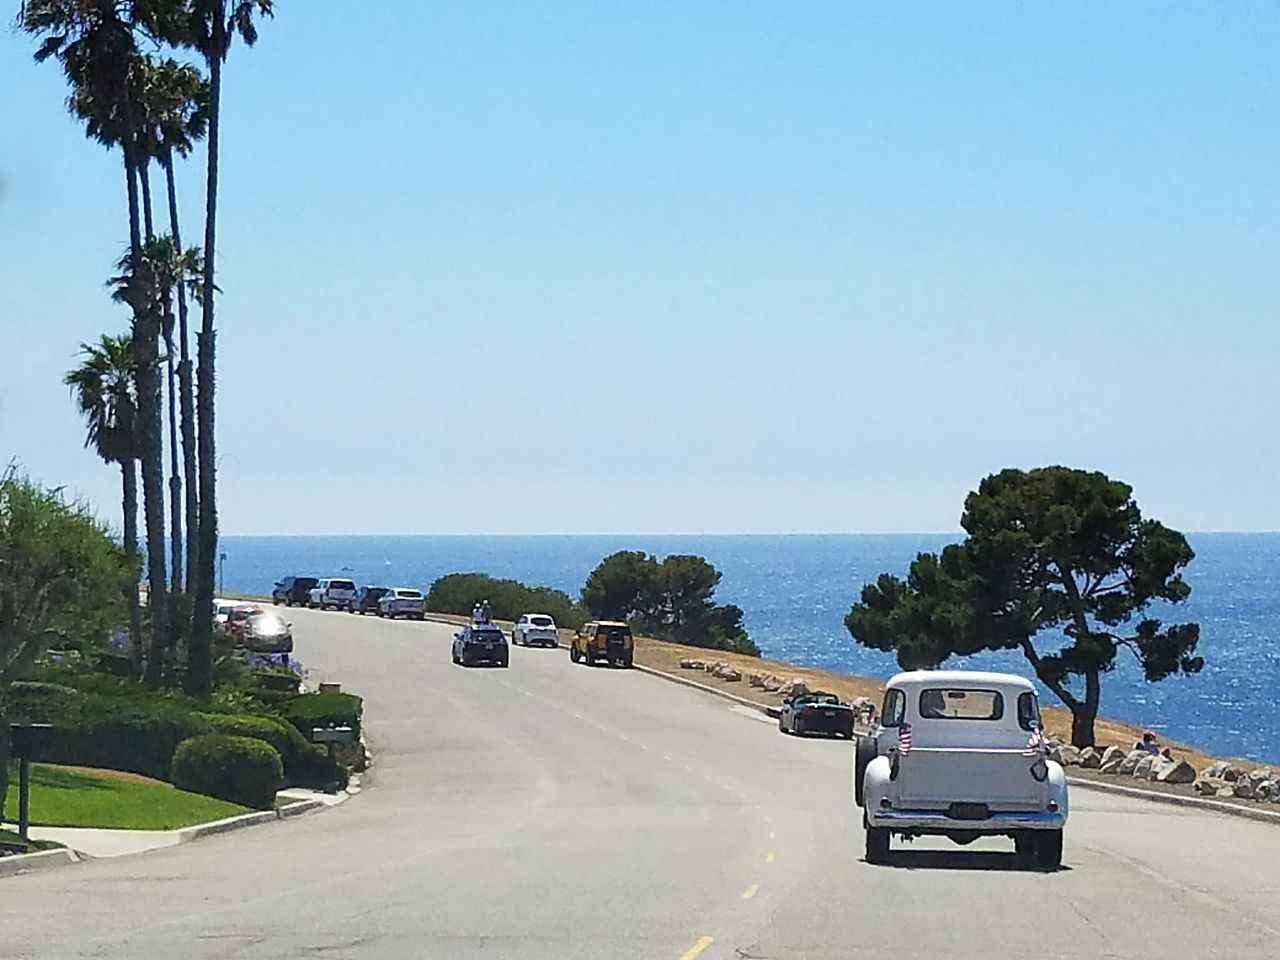 Vehicle Car Classic Car Patriotism Patriotic Weekend Activities Liesure Lifestyles Nature Road With A View Ocean View Sothern California Vacation PhonePhotography Samsungphotography Daytime California Dreaming Empty Road Holiday Tranquil Scene Transportation Mode Of Transport City Life Blue Summer